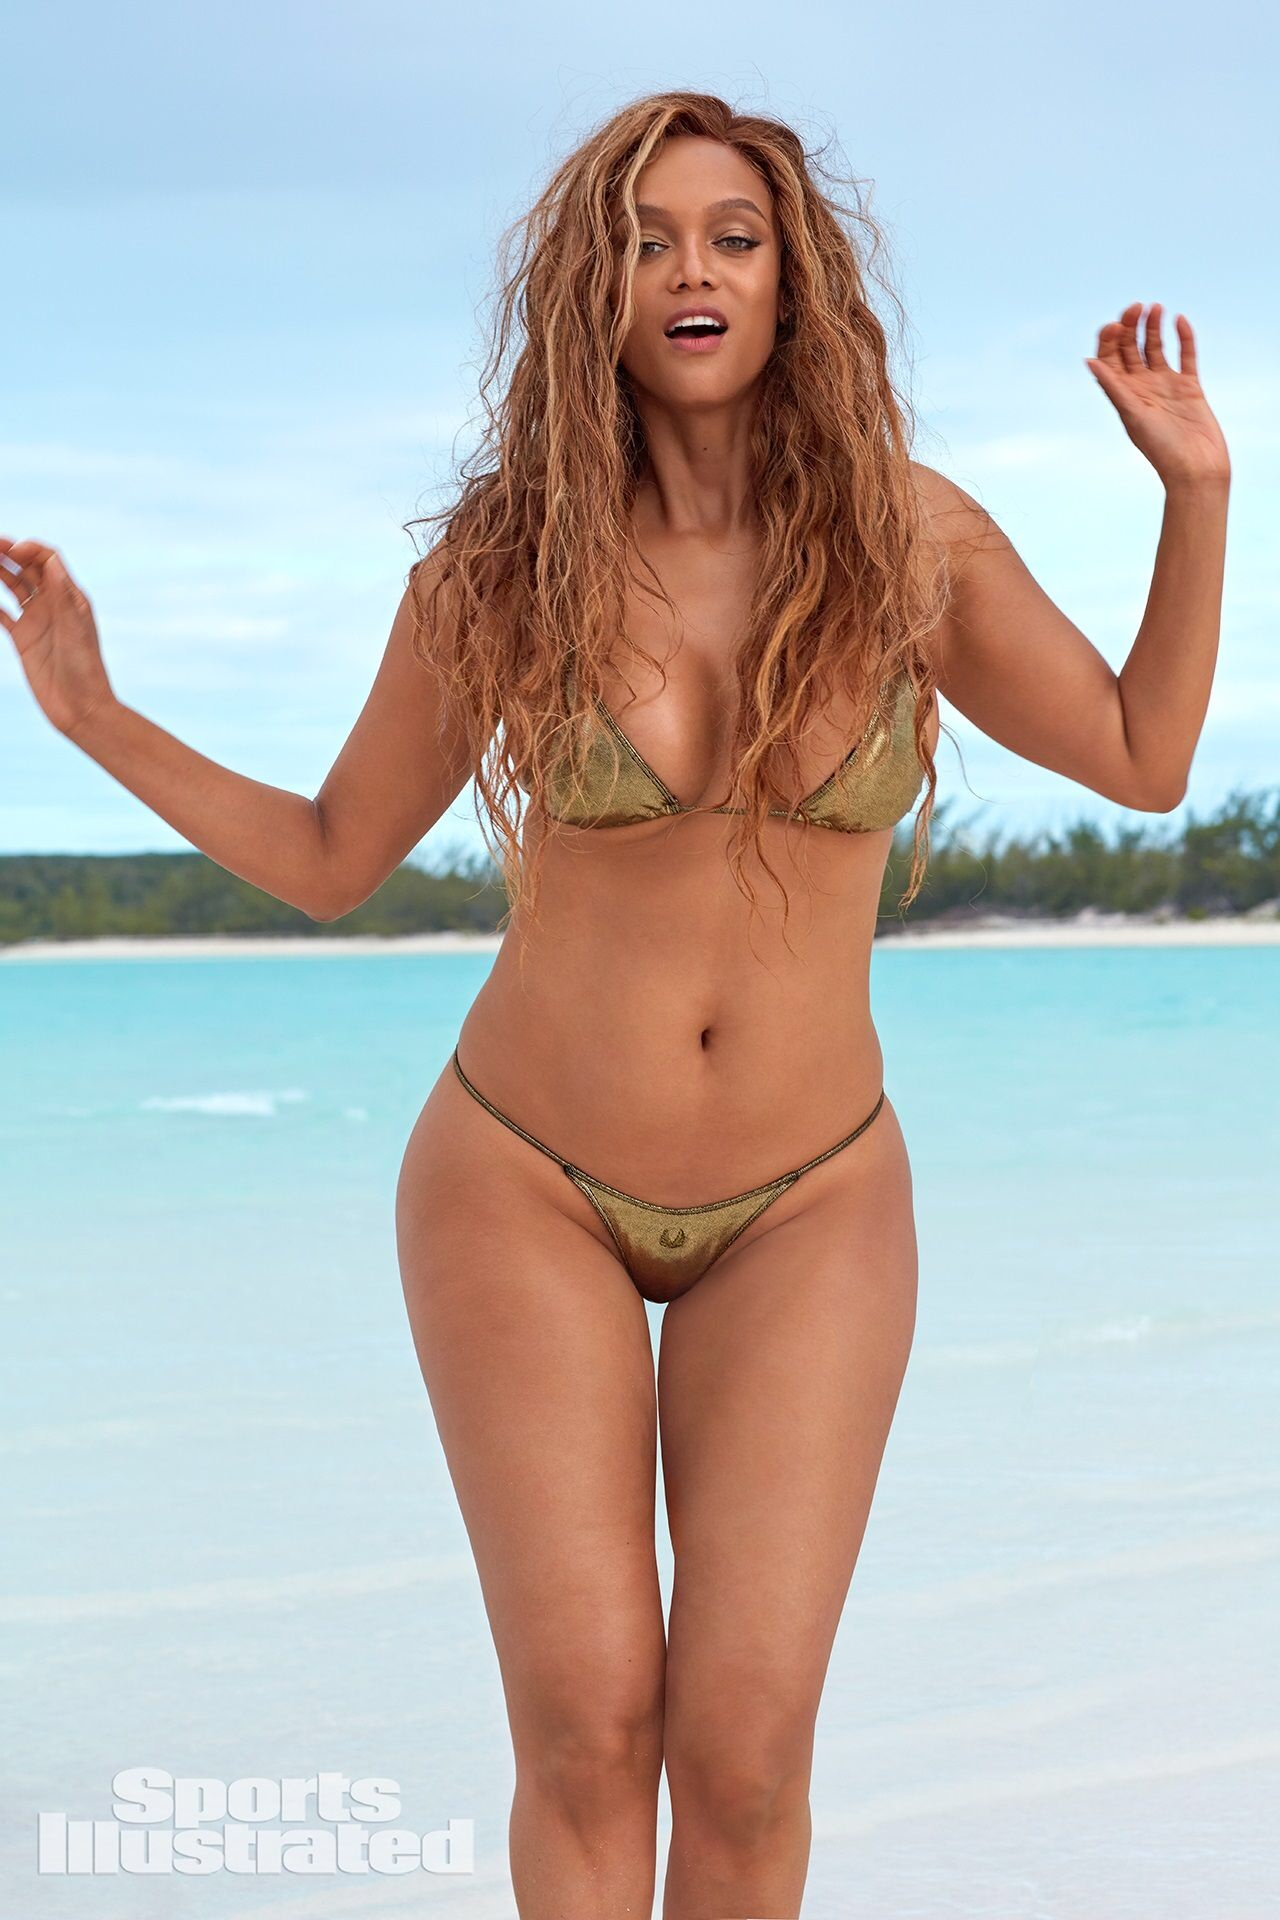 Tyra Banks Sports Illustrated Swimsuit Sports Illustrated Swimsuit Issue Si Swimsuit